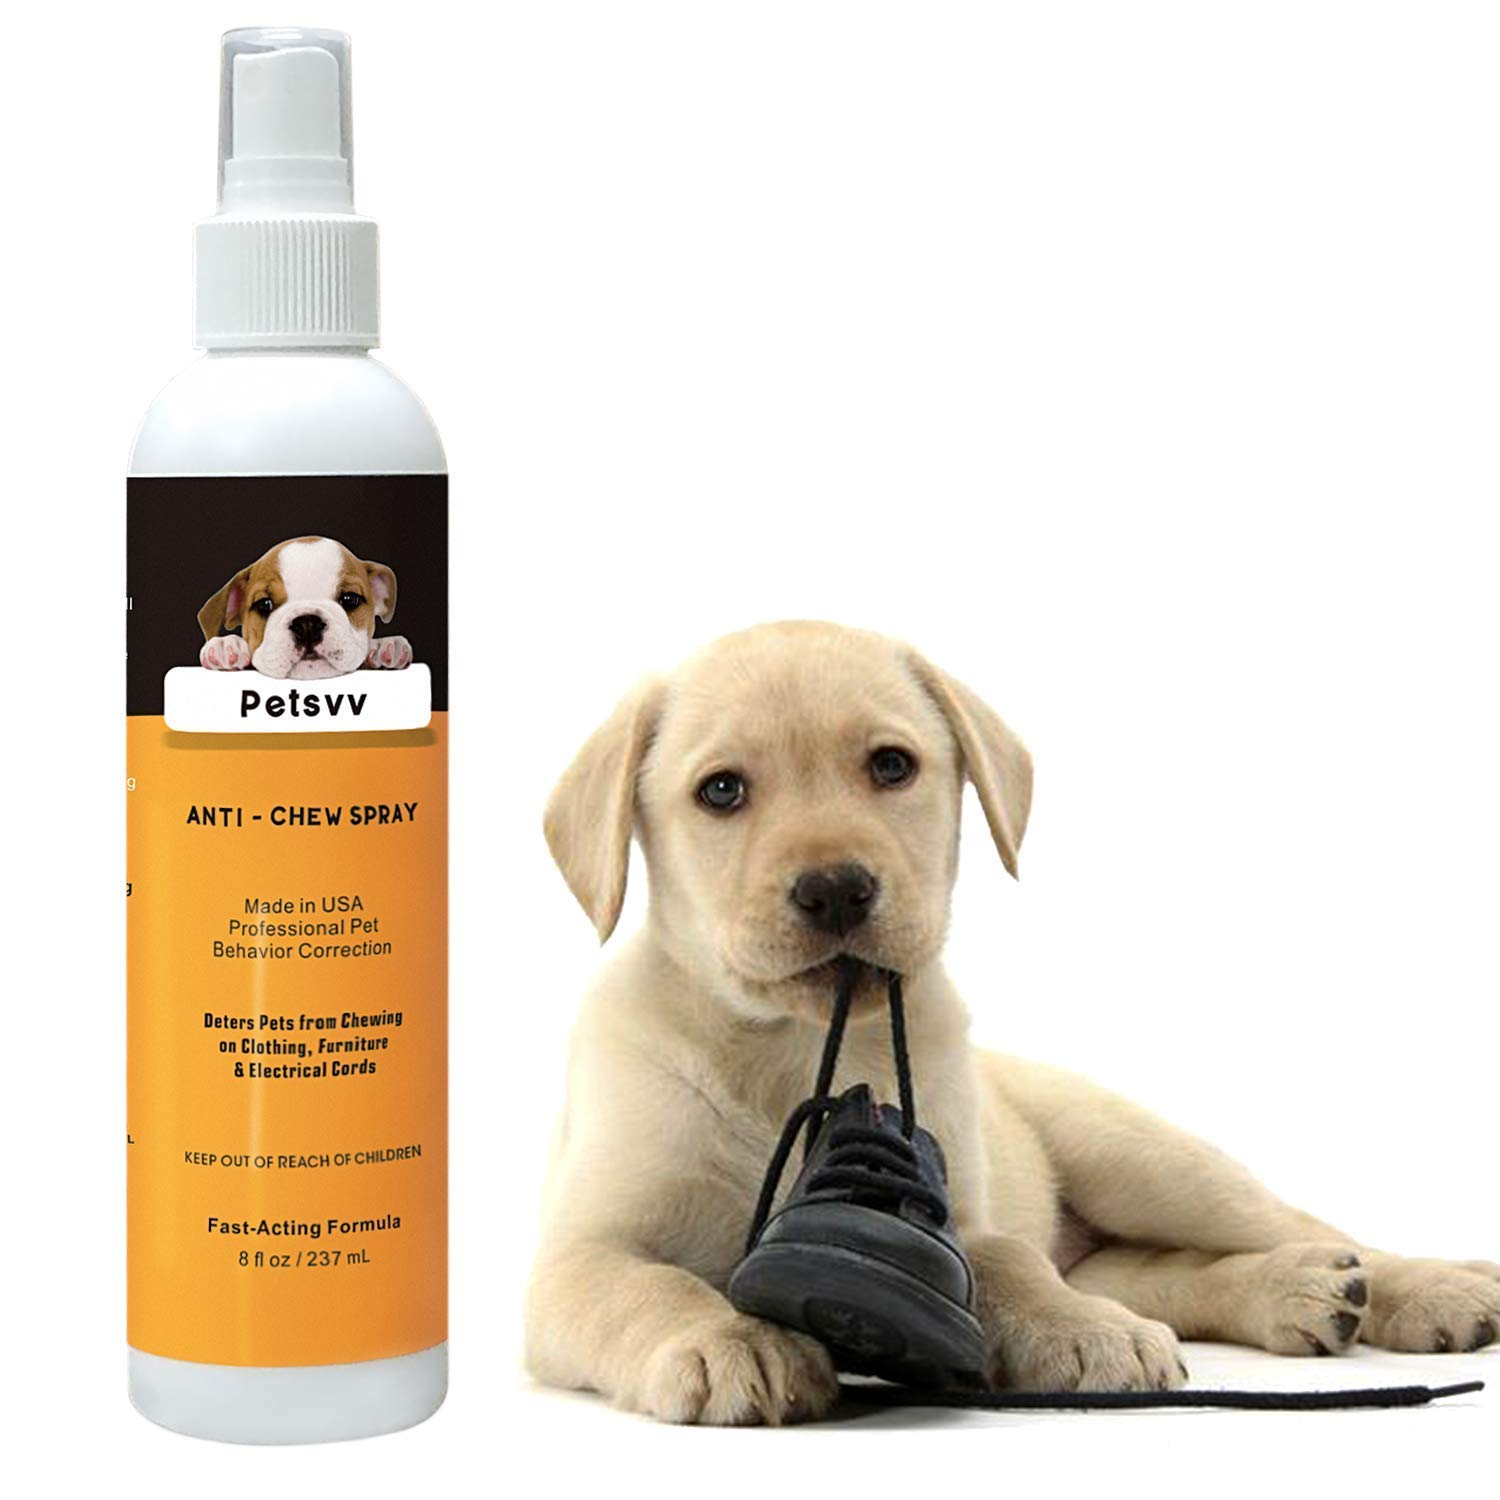 Anti Chew Spray for Dogs - Pet Deterrent - Natural Bitter Training Spray to Stop Biting | Non-Toxic | Alcohol Free | Made in USA - 8oz by Petsvv